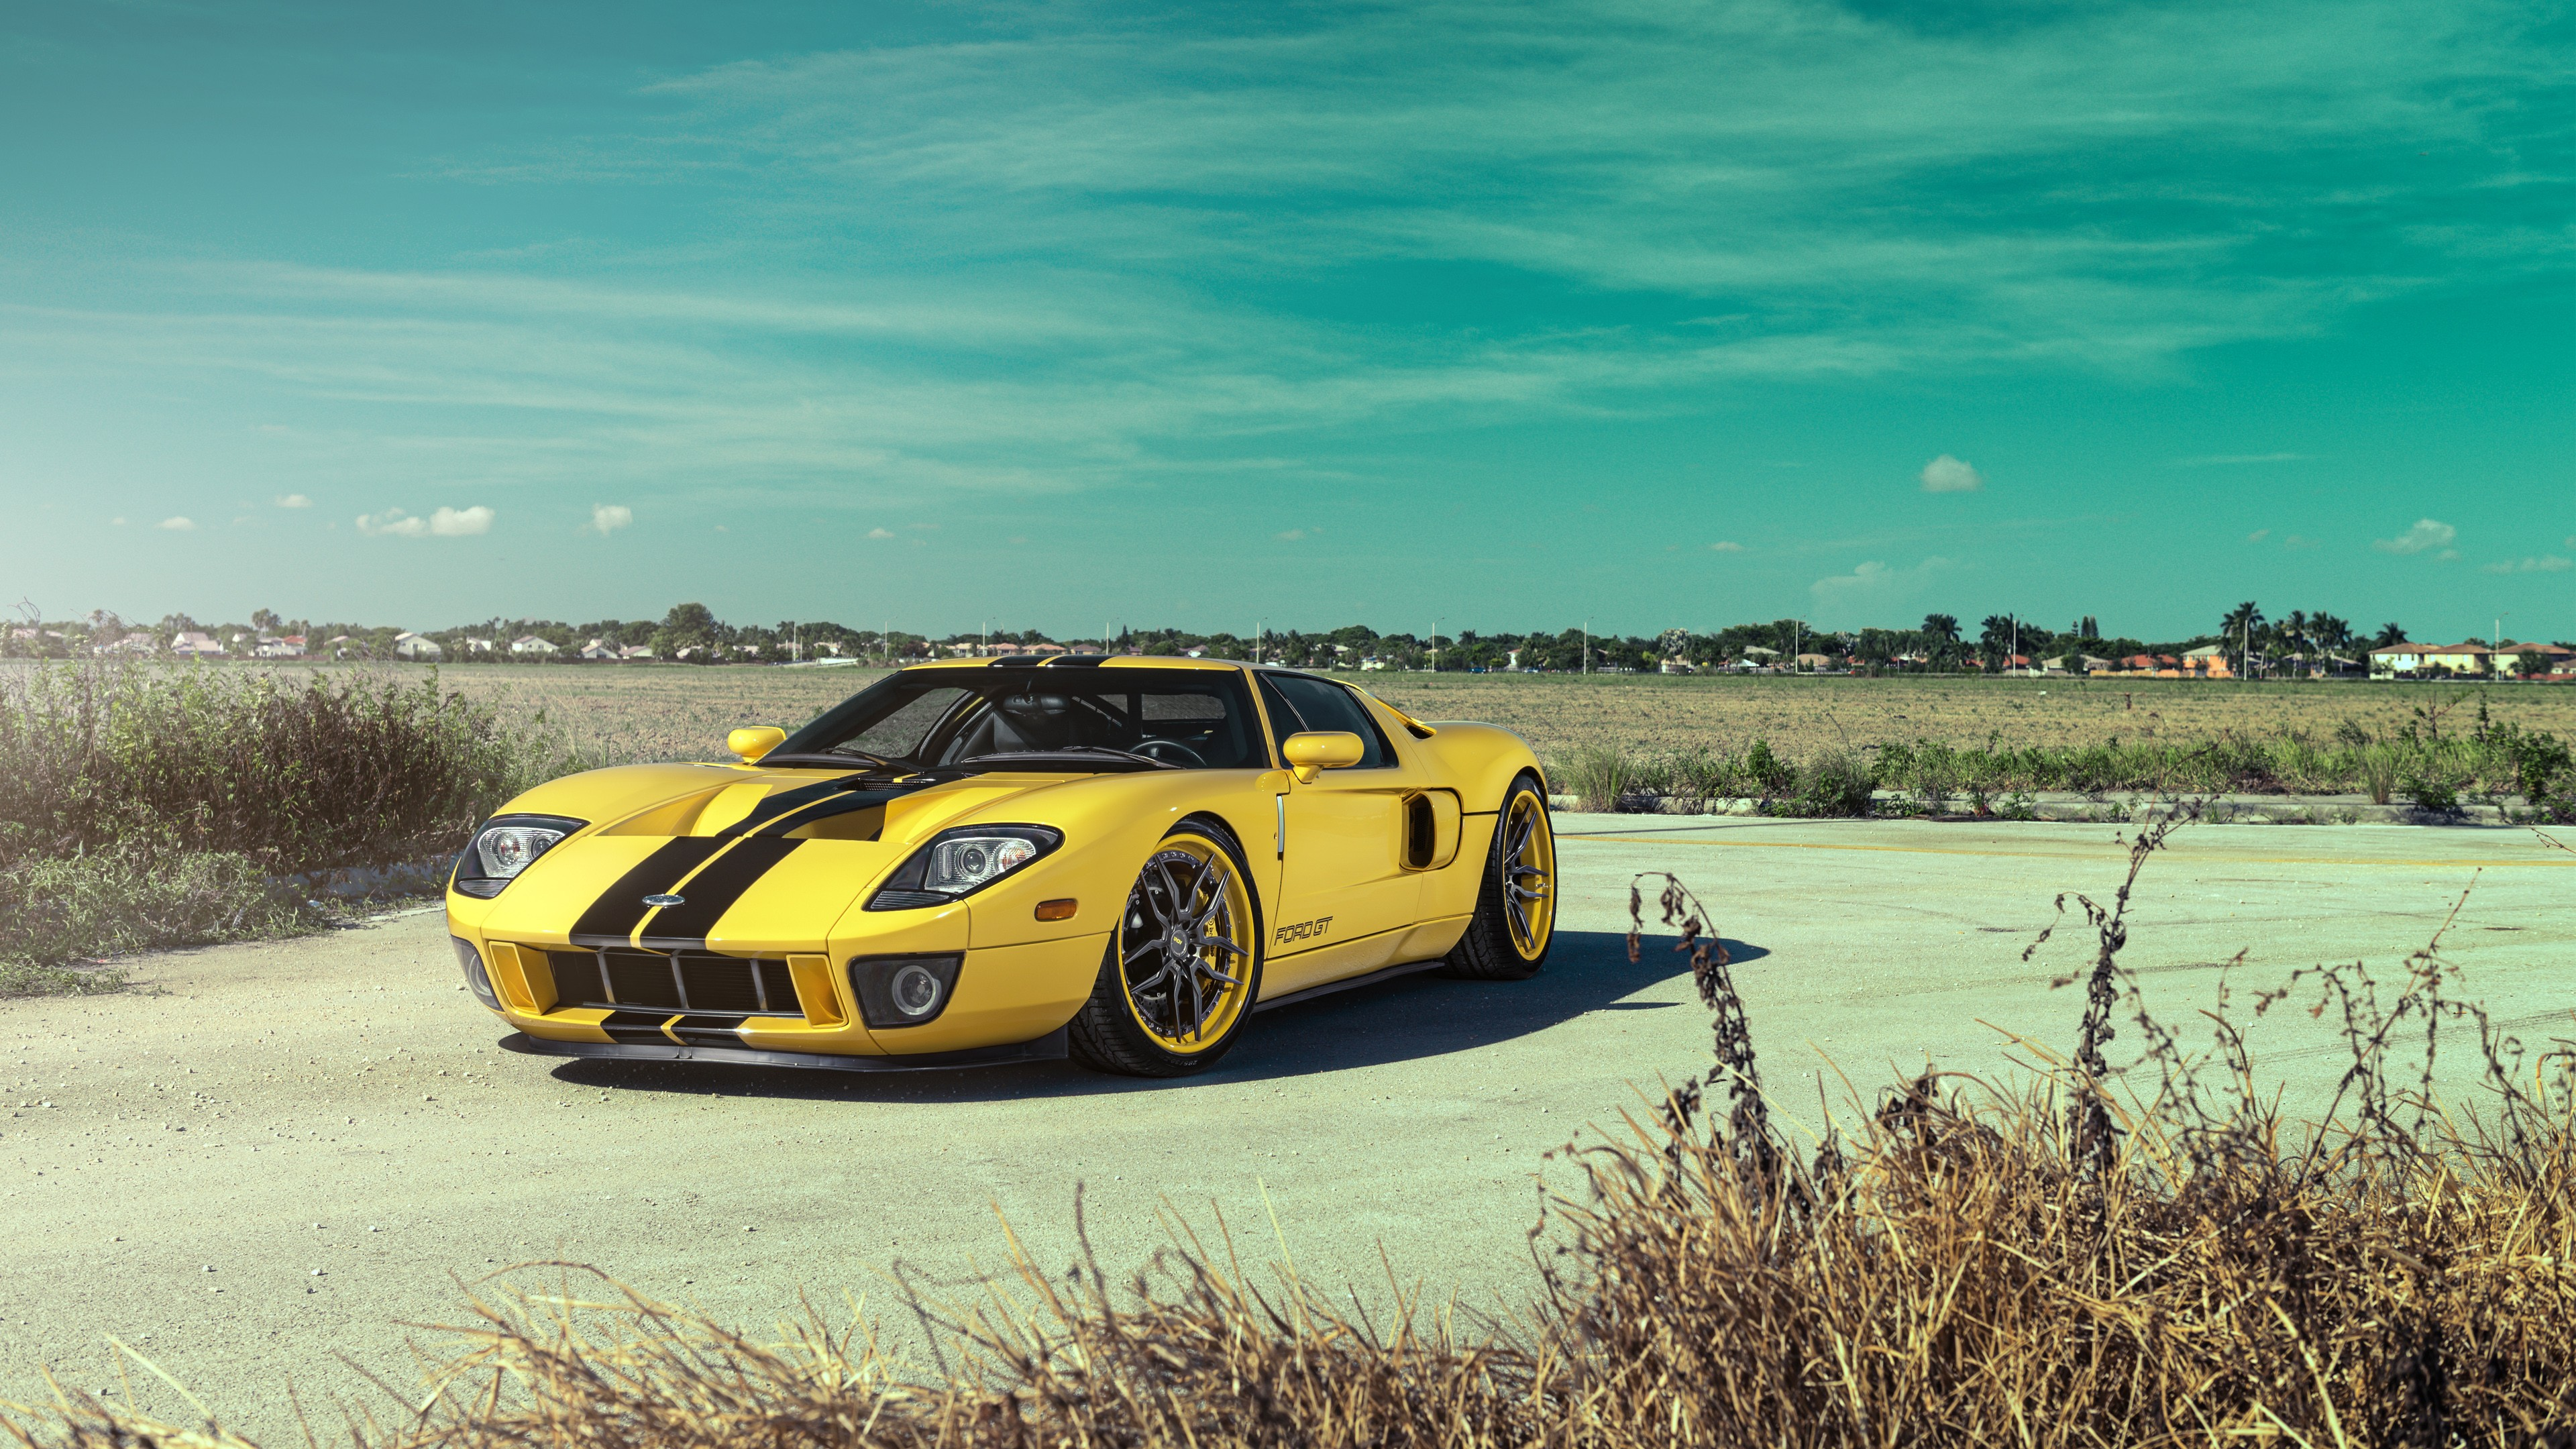 Adv1 ford gt wallpaper hd car wallpapers id 5531 - Wallpaper hd 4k car ...